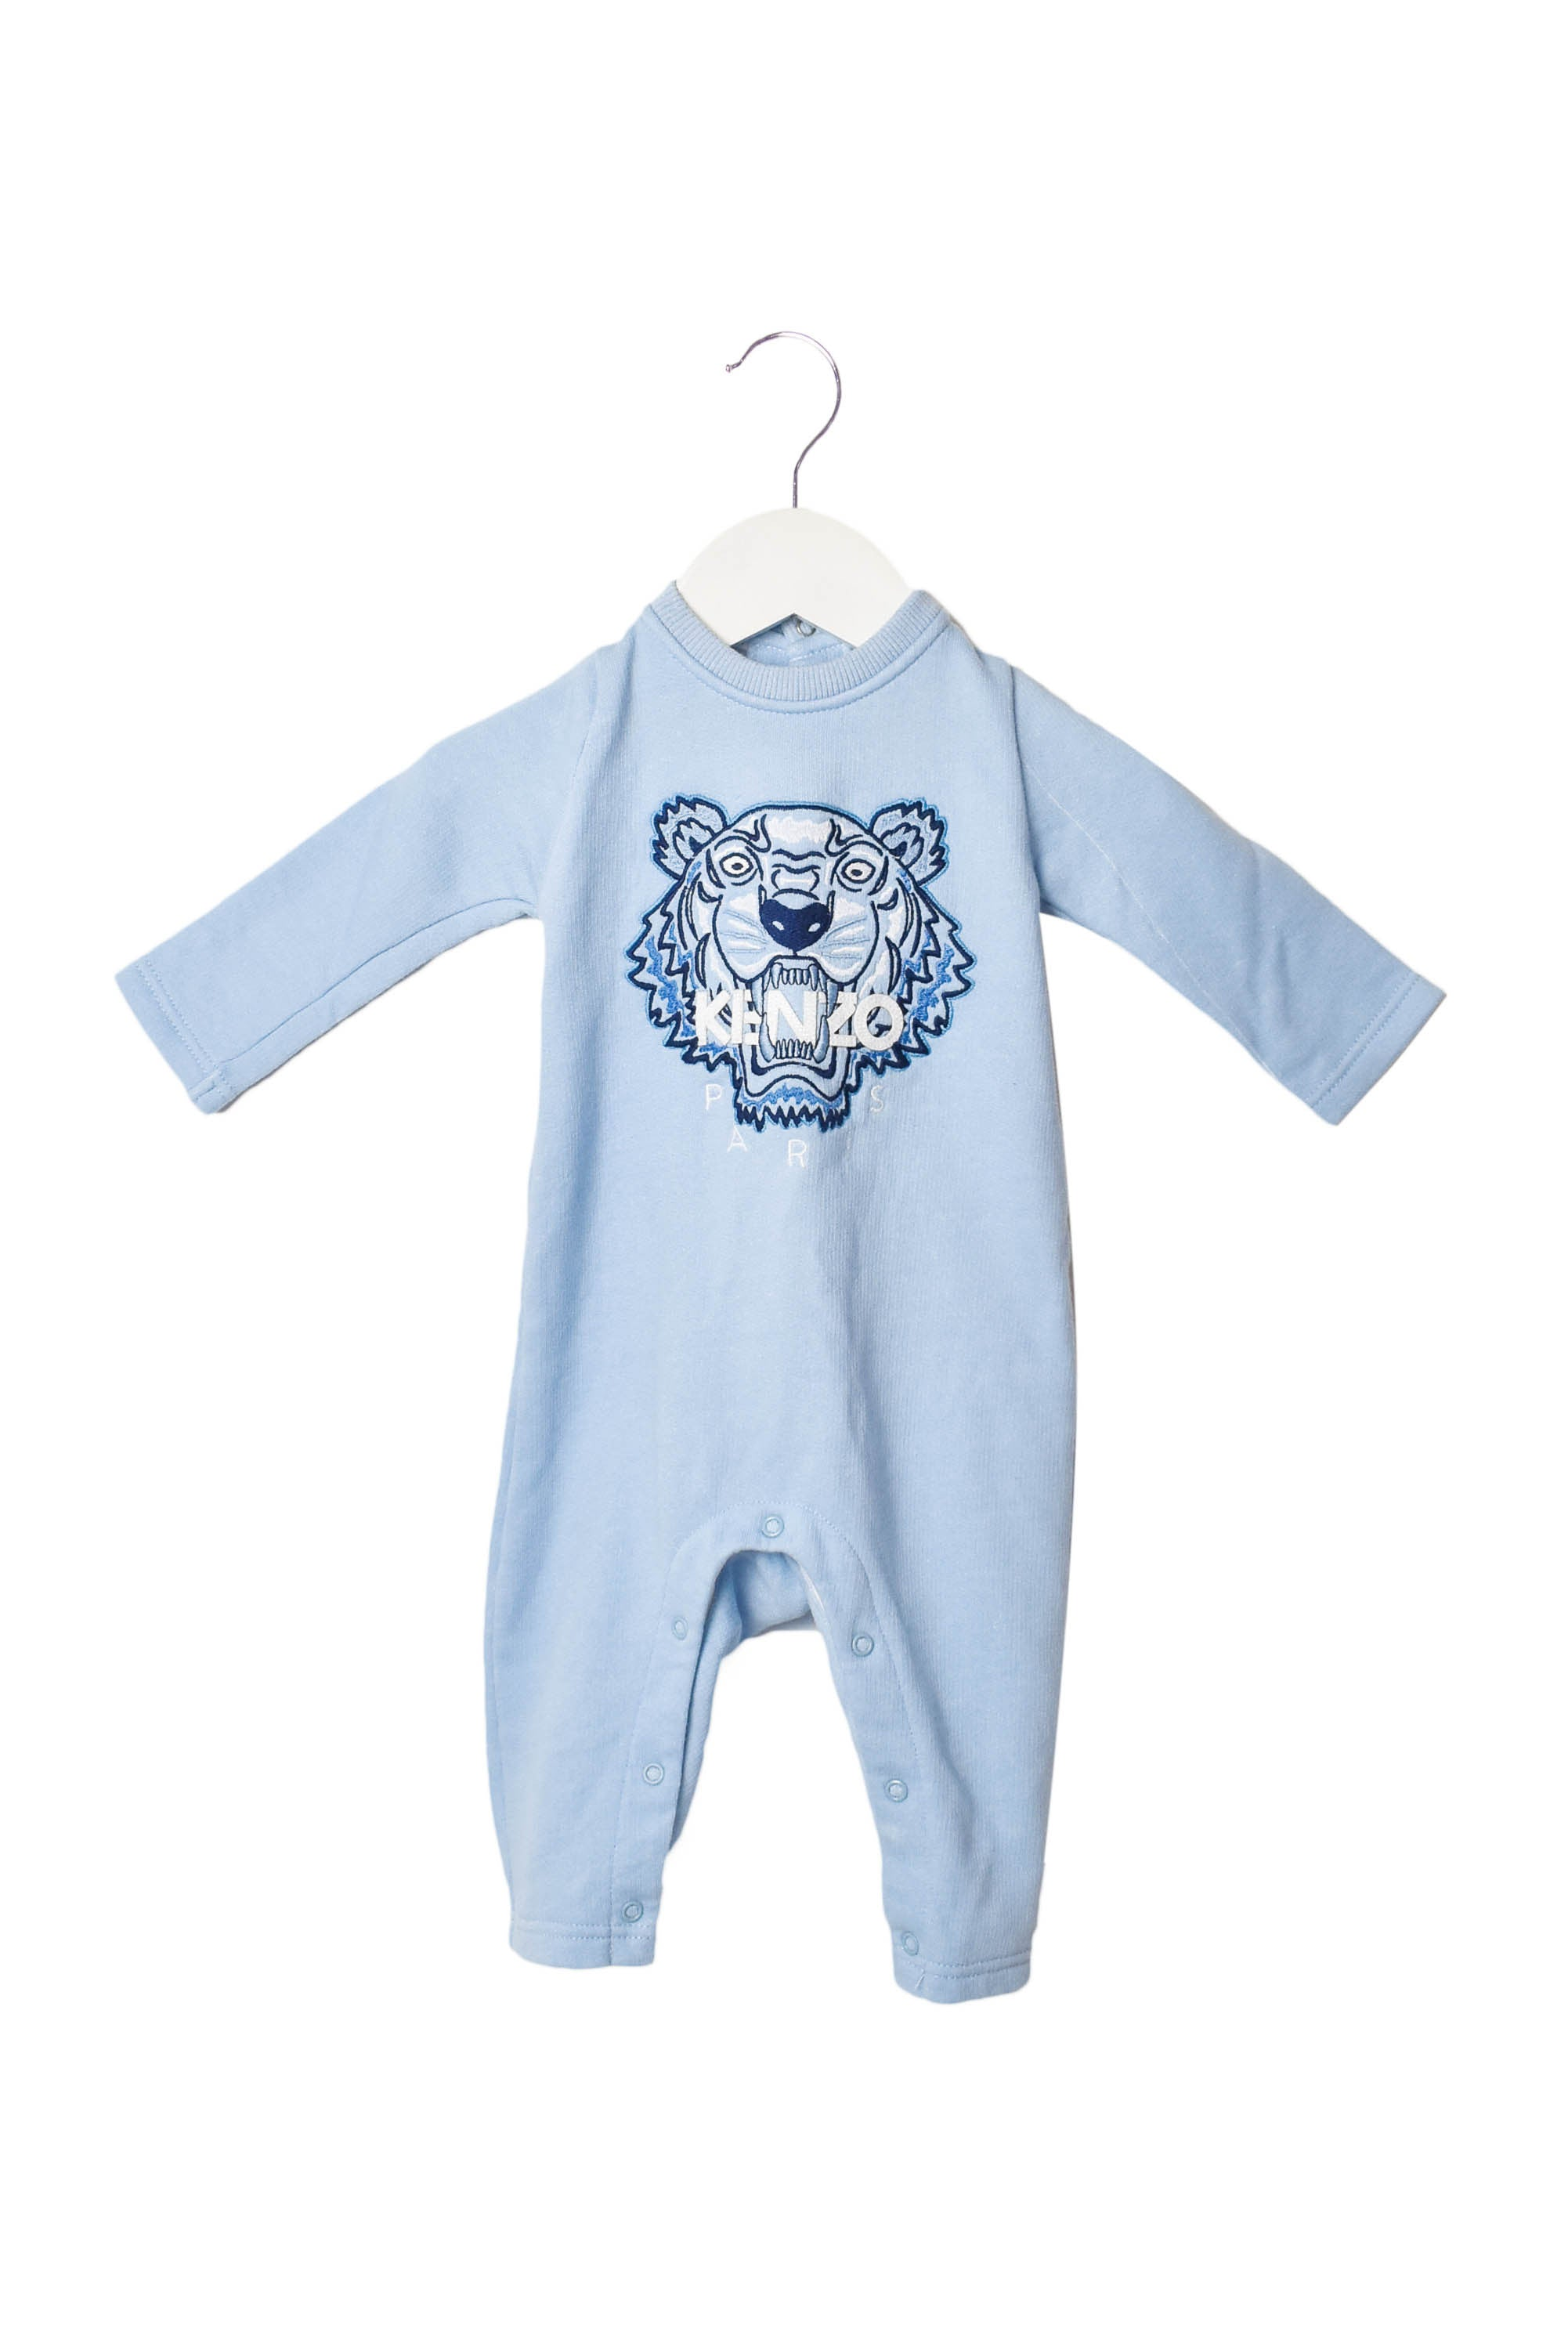 10004163 Kenzo Baby~Jumpsuit 6M, Kenzo Retykle | Online Baby & Kids Clothing Hong Kong